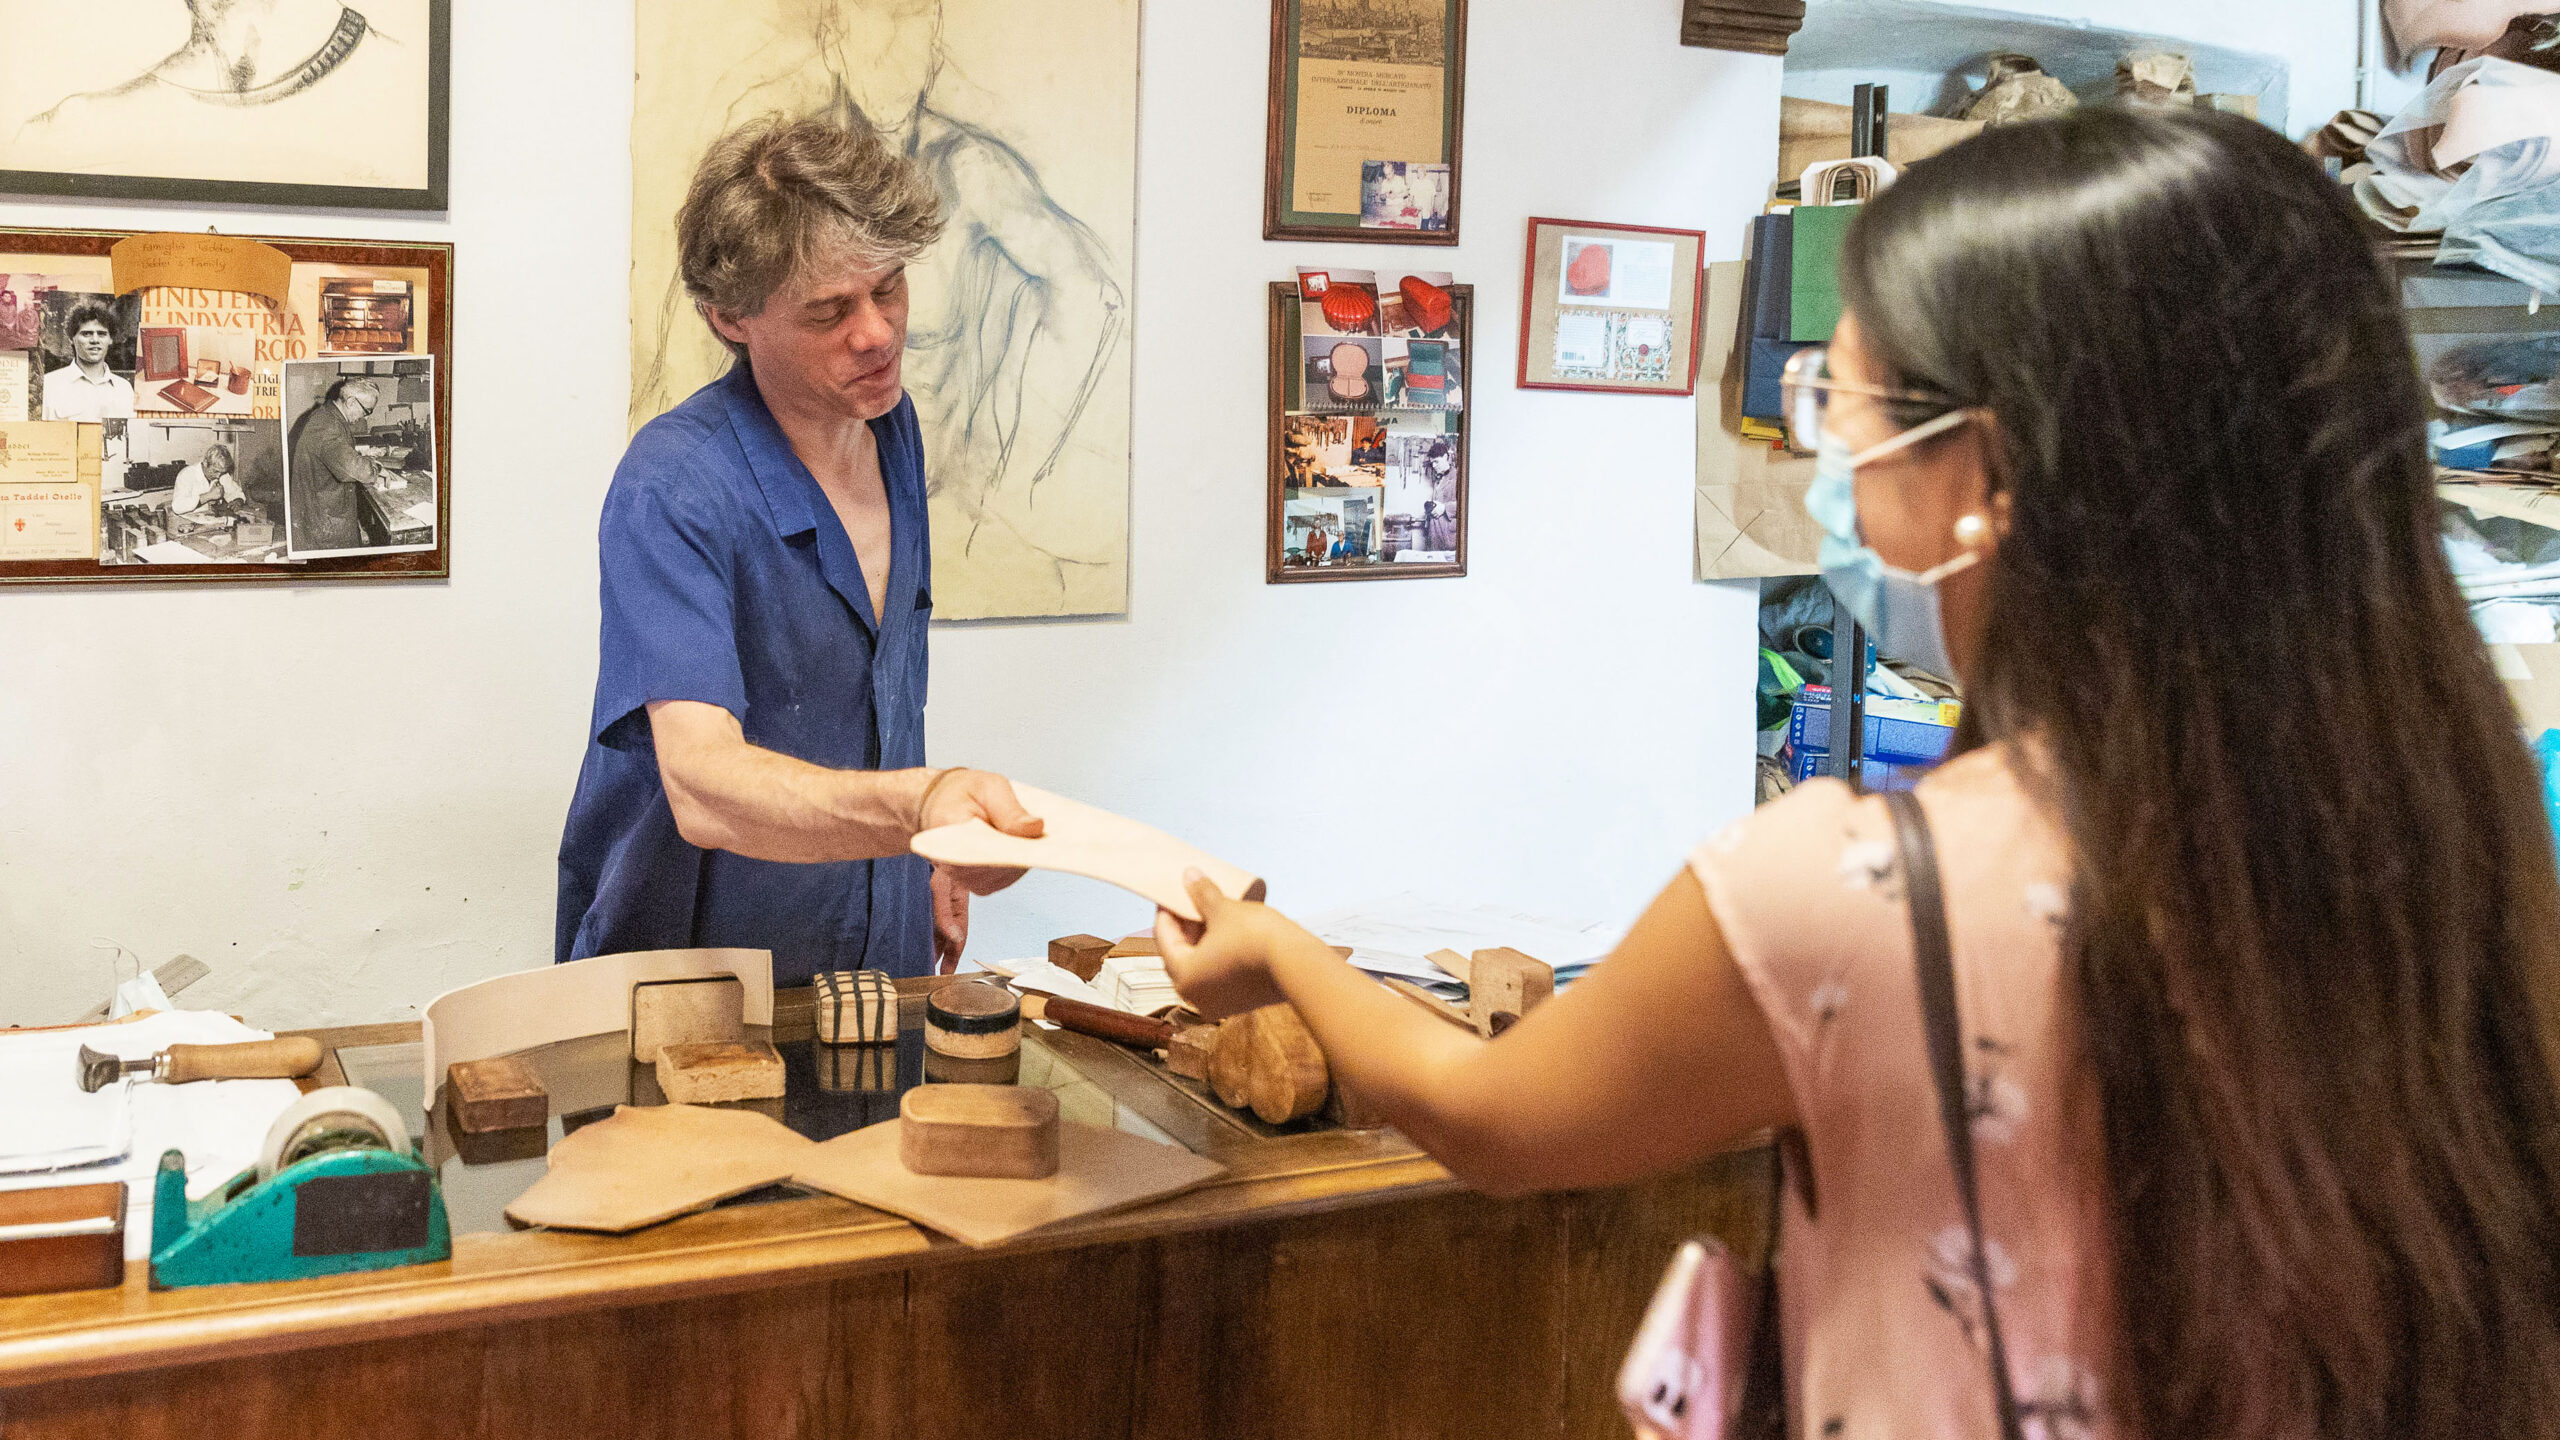 An artisan shows to a girl his leather during an artisan tour in Florence